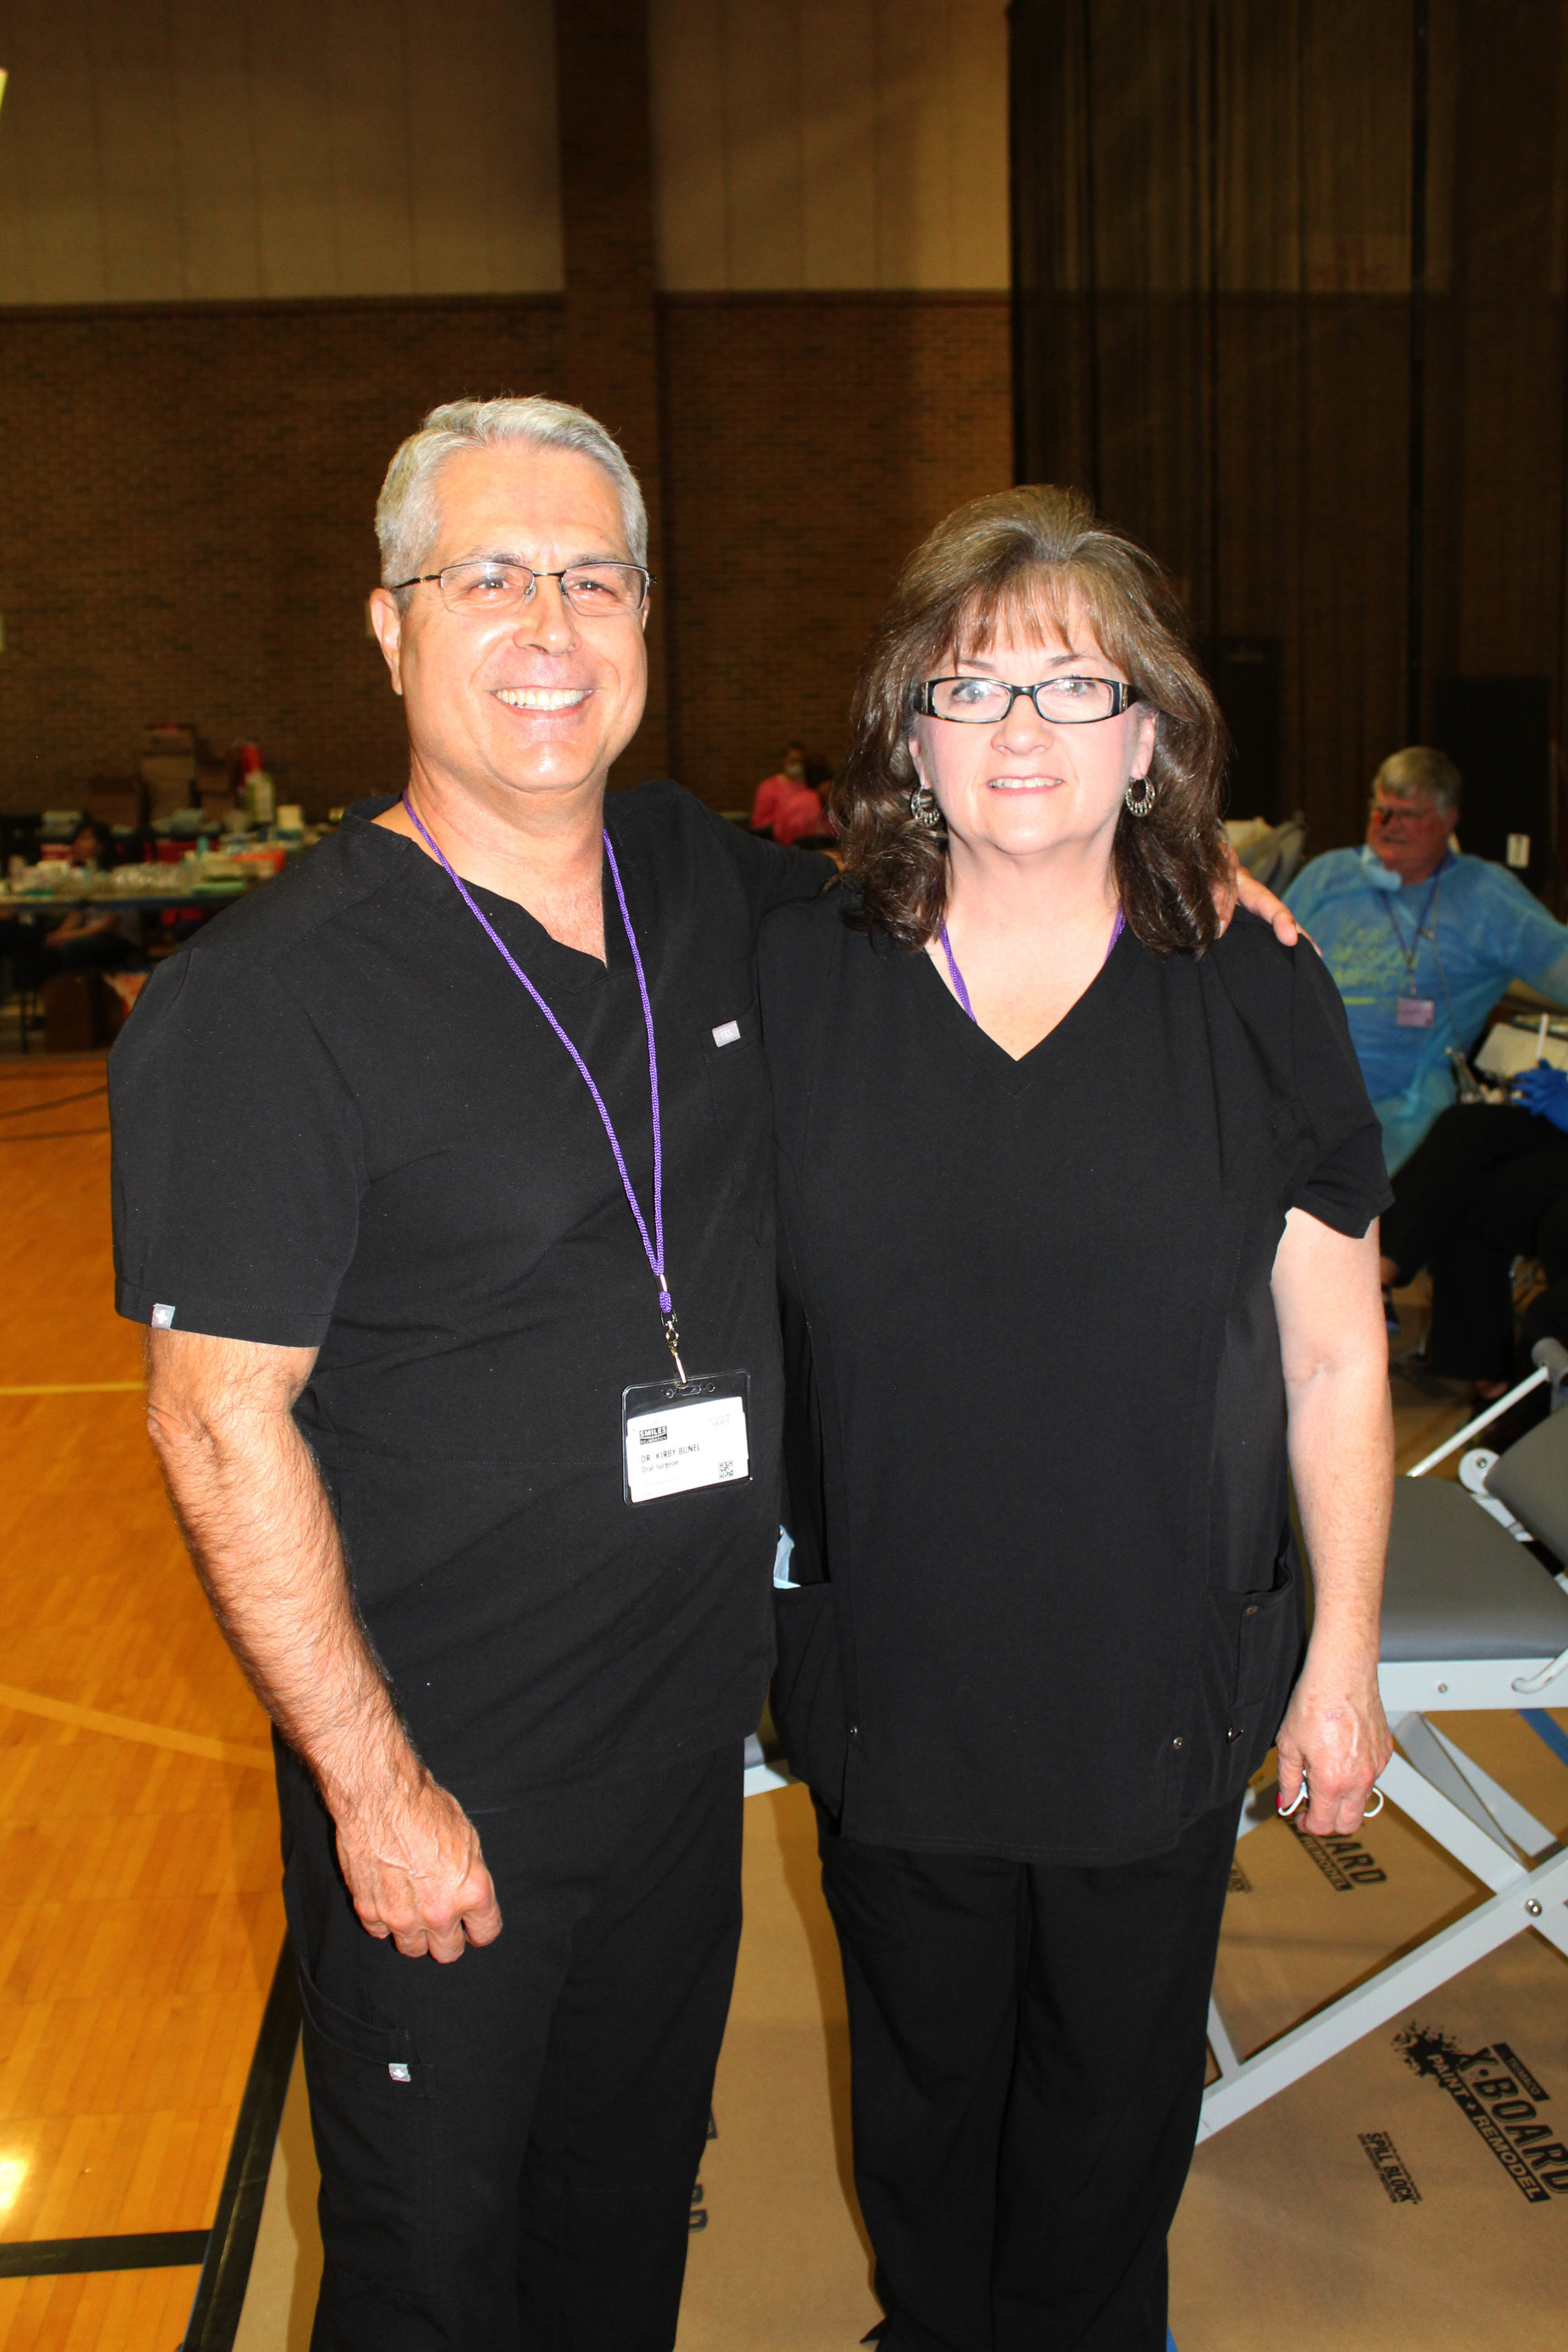 Dr. Kirby Bunel and Barbara Redden